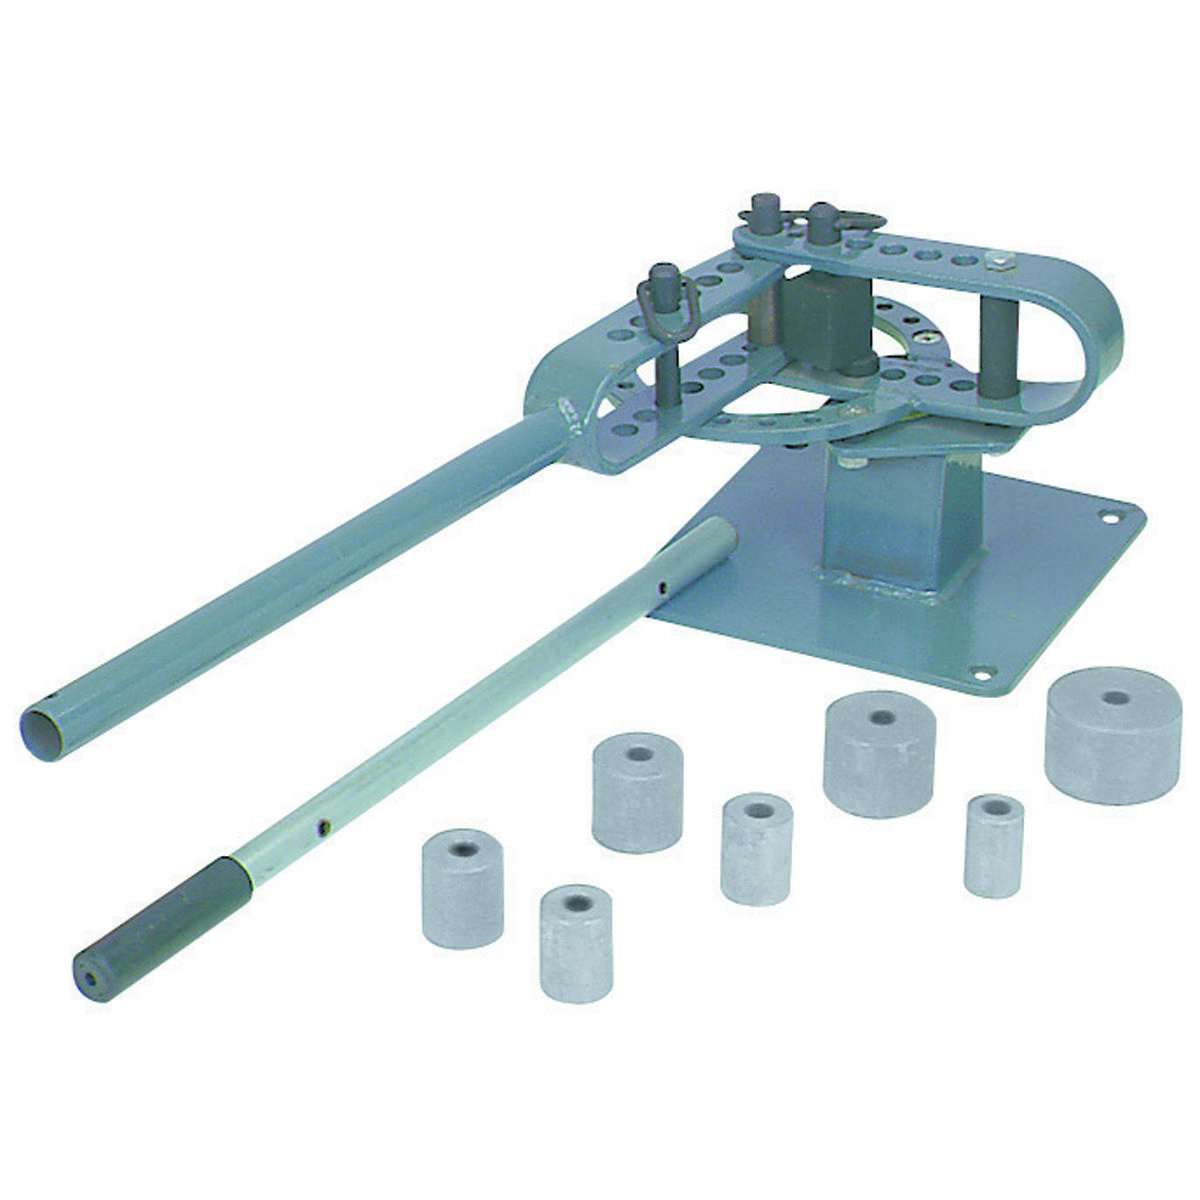 Bench Bar And Rod Bender Metal Bending Tools Metal Working Tools Metal Fabrication